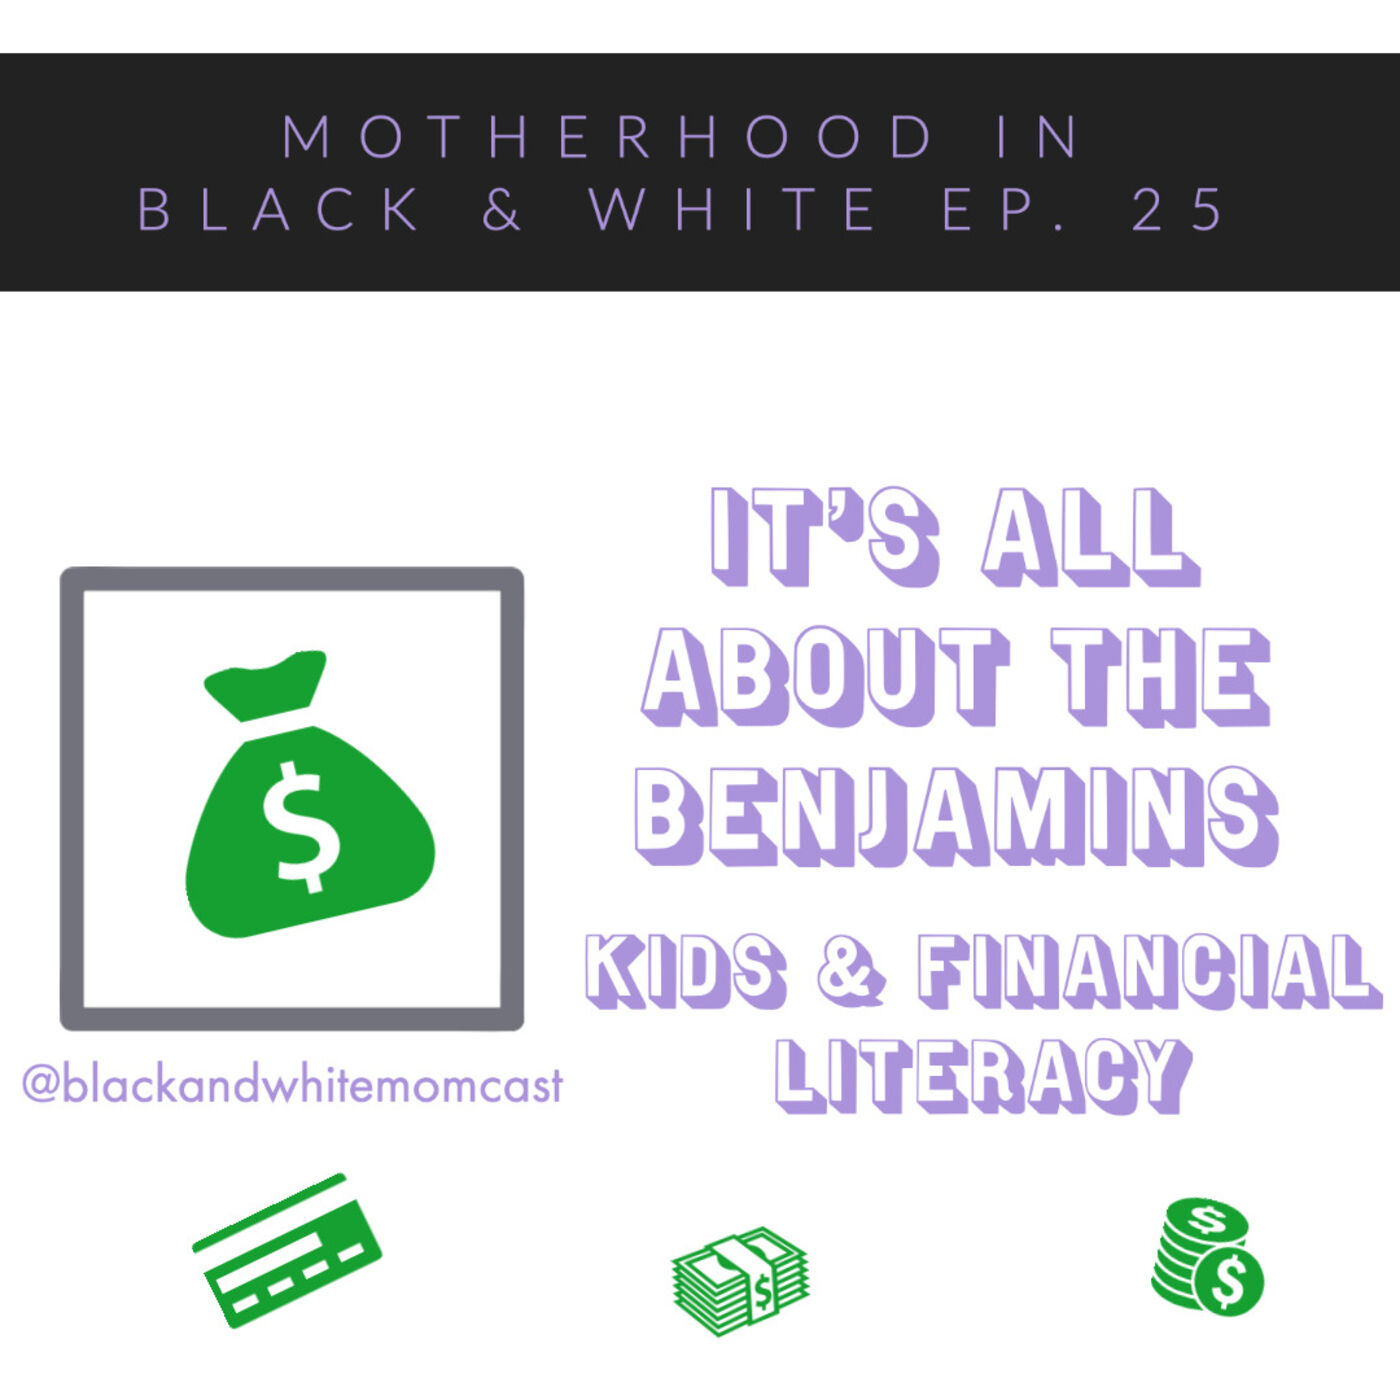 It's All About the Benjamins: Kids & Financial Literacy